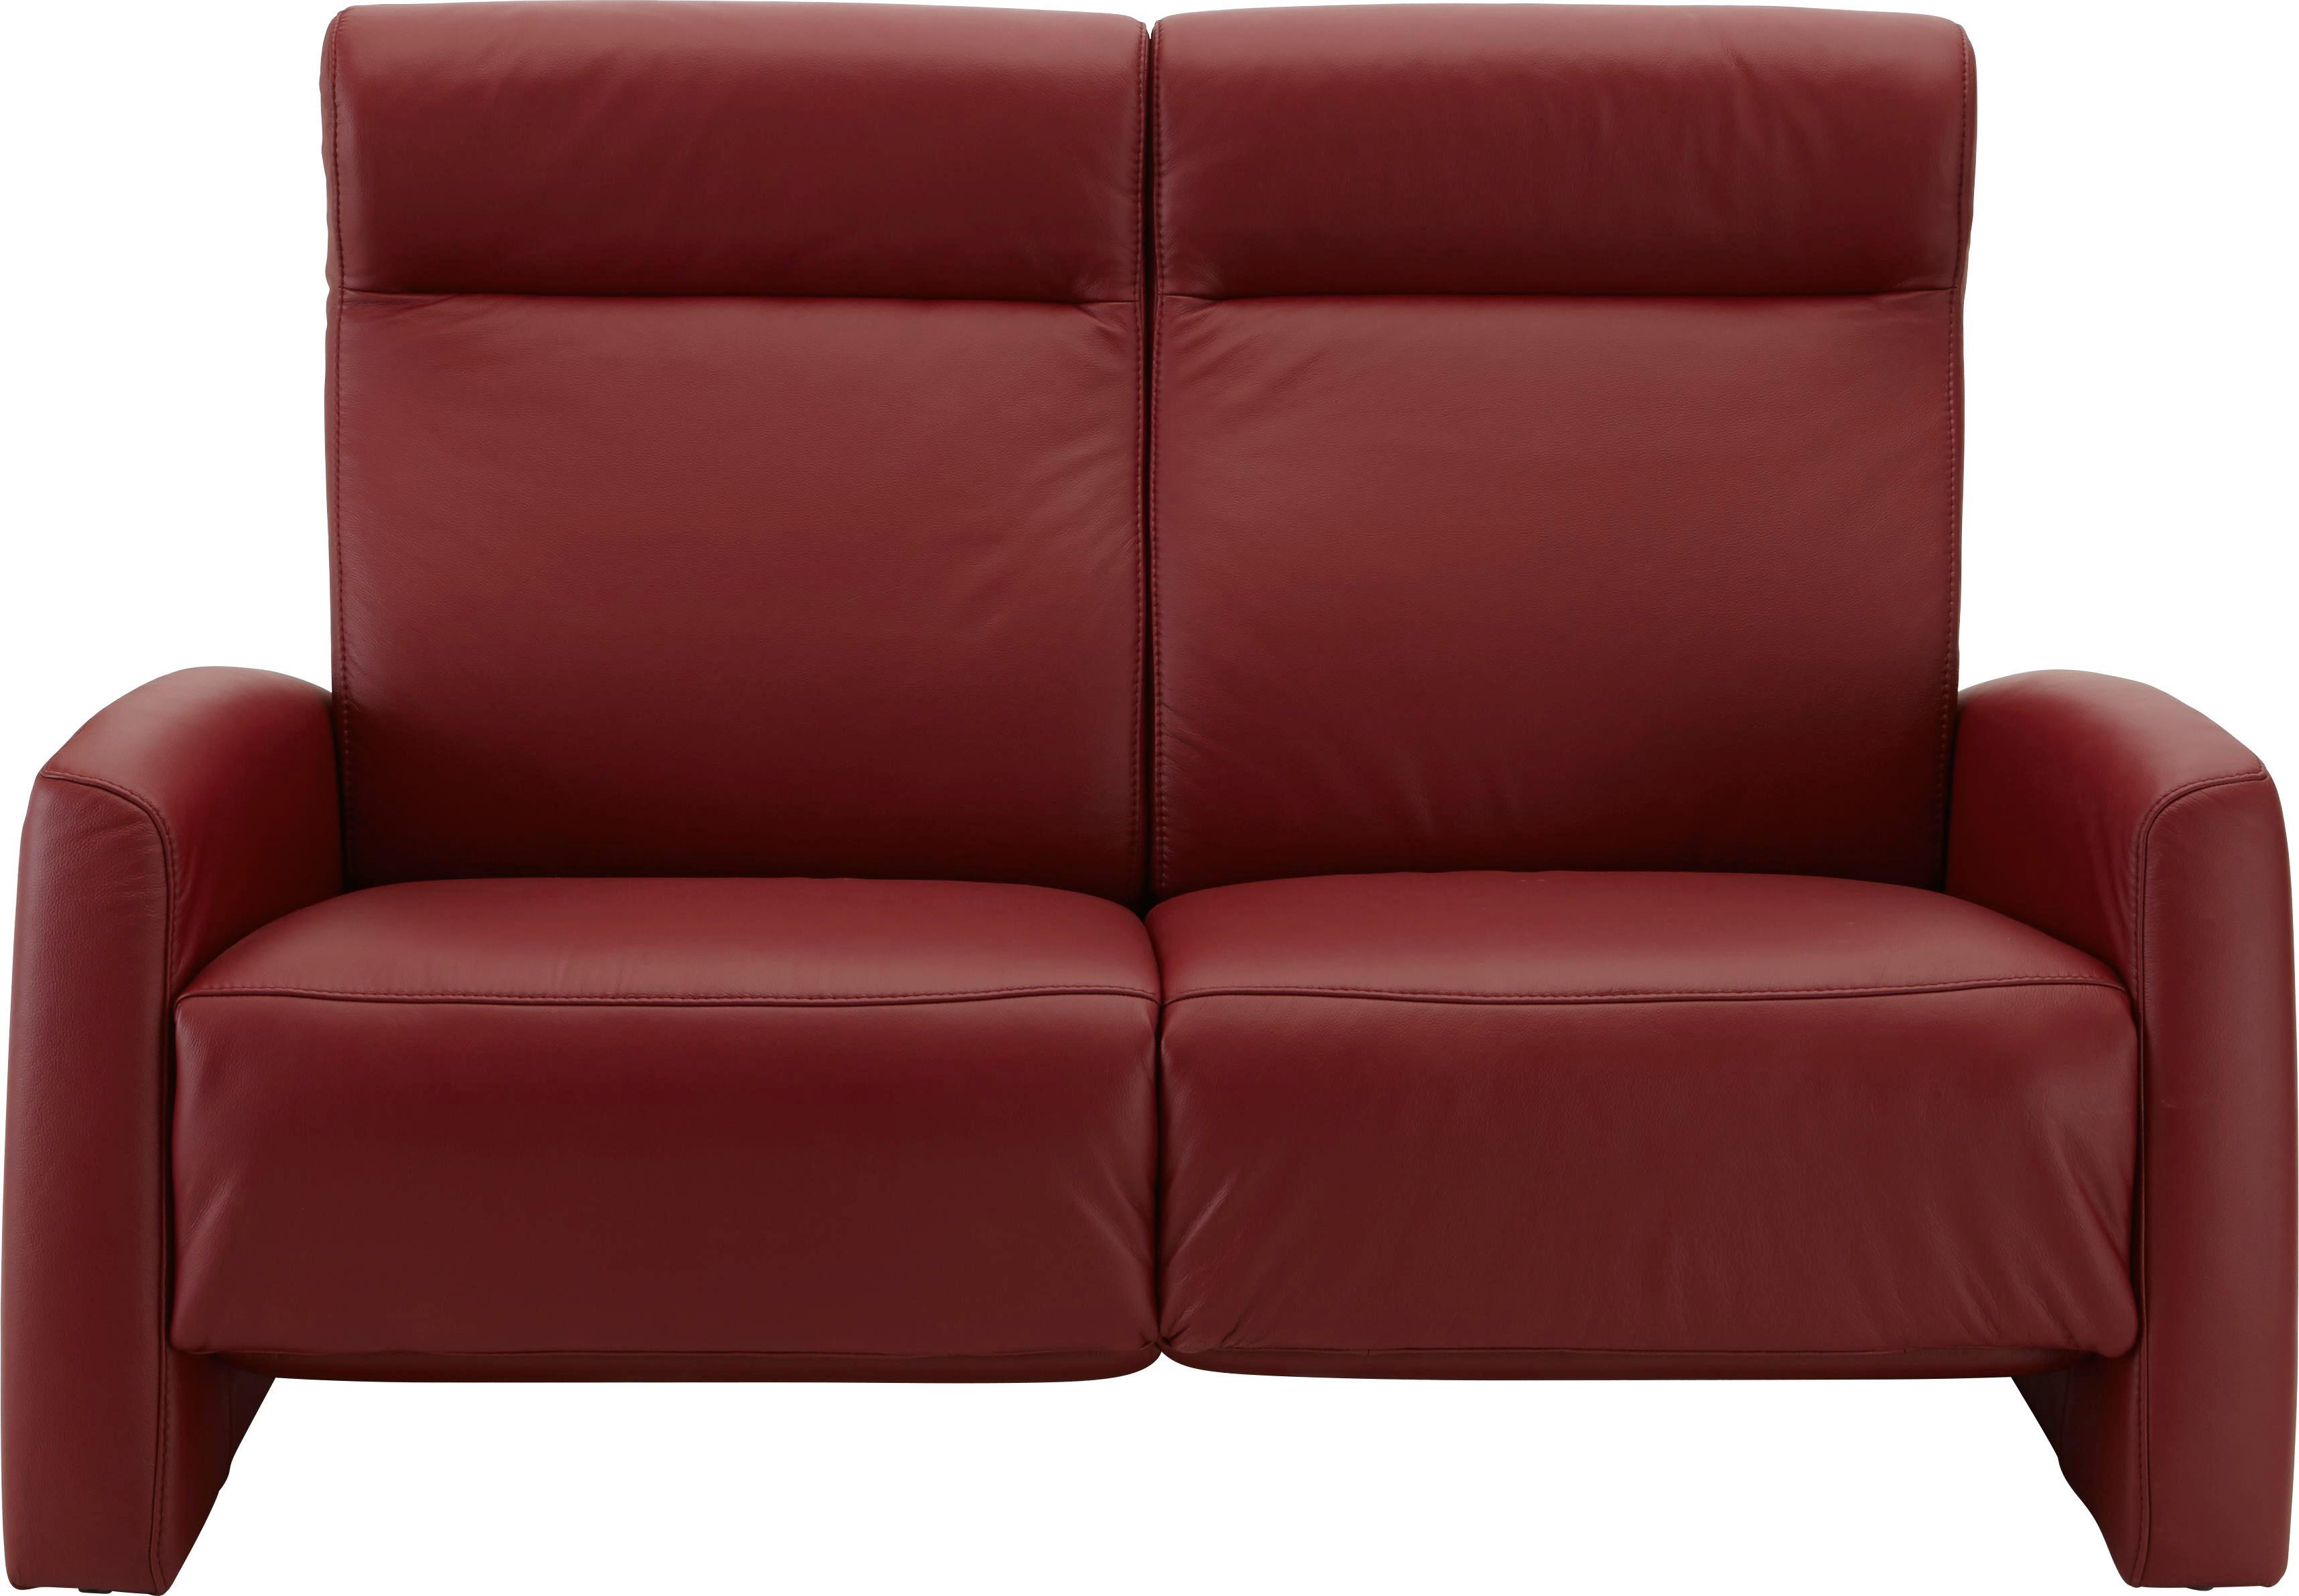 Ledersofa Rot Sofa Rot It Is A Complete Set Of Rot Iron One Seater Sofa With